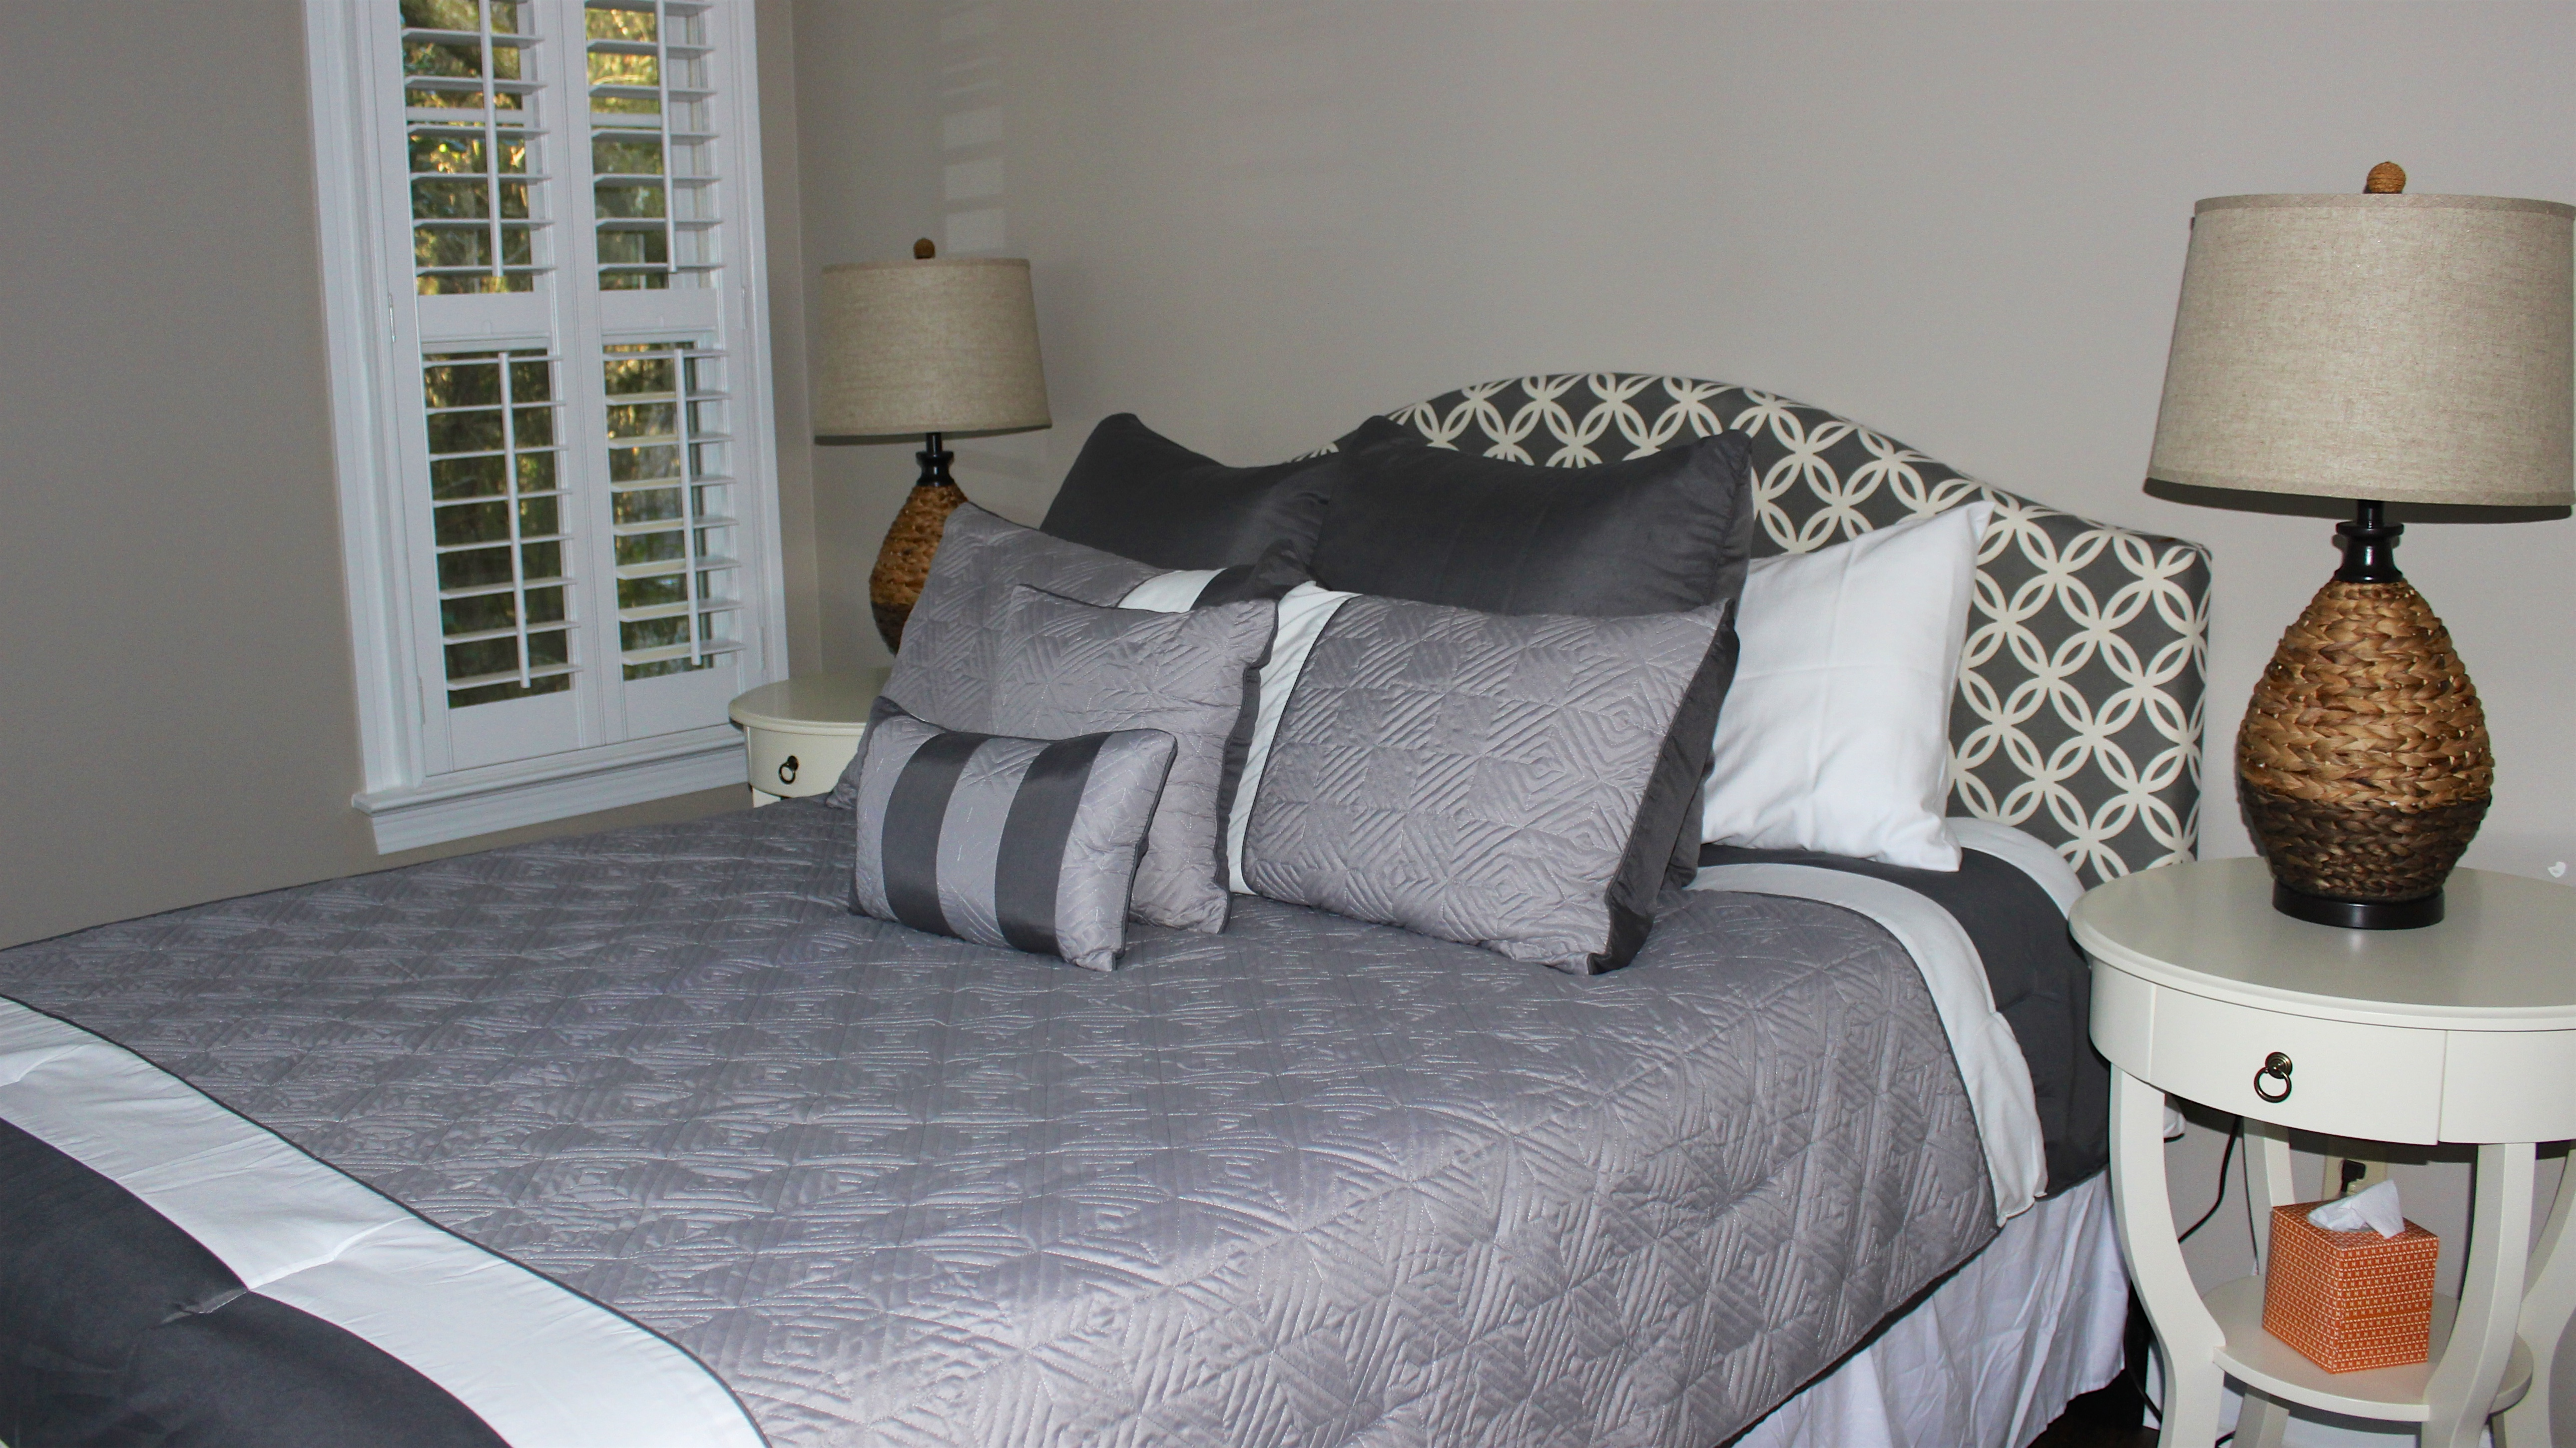 The 4th bedroom in this home has a queen bed.